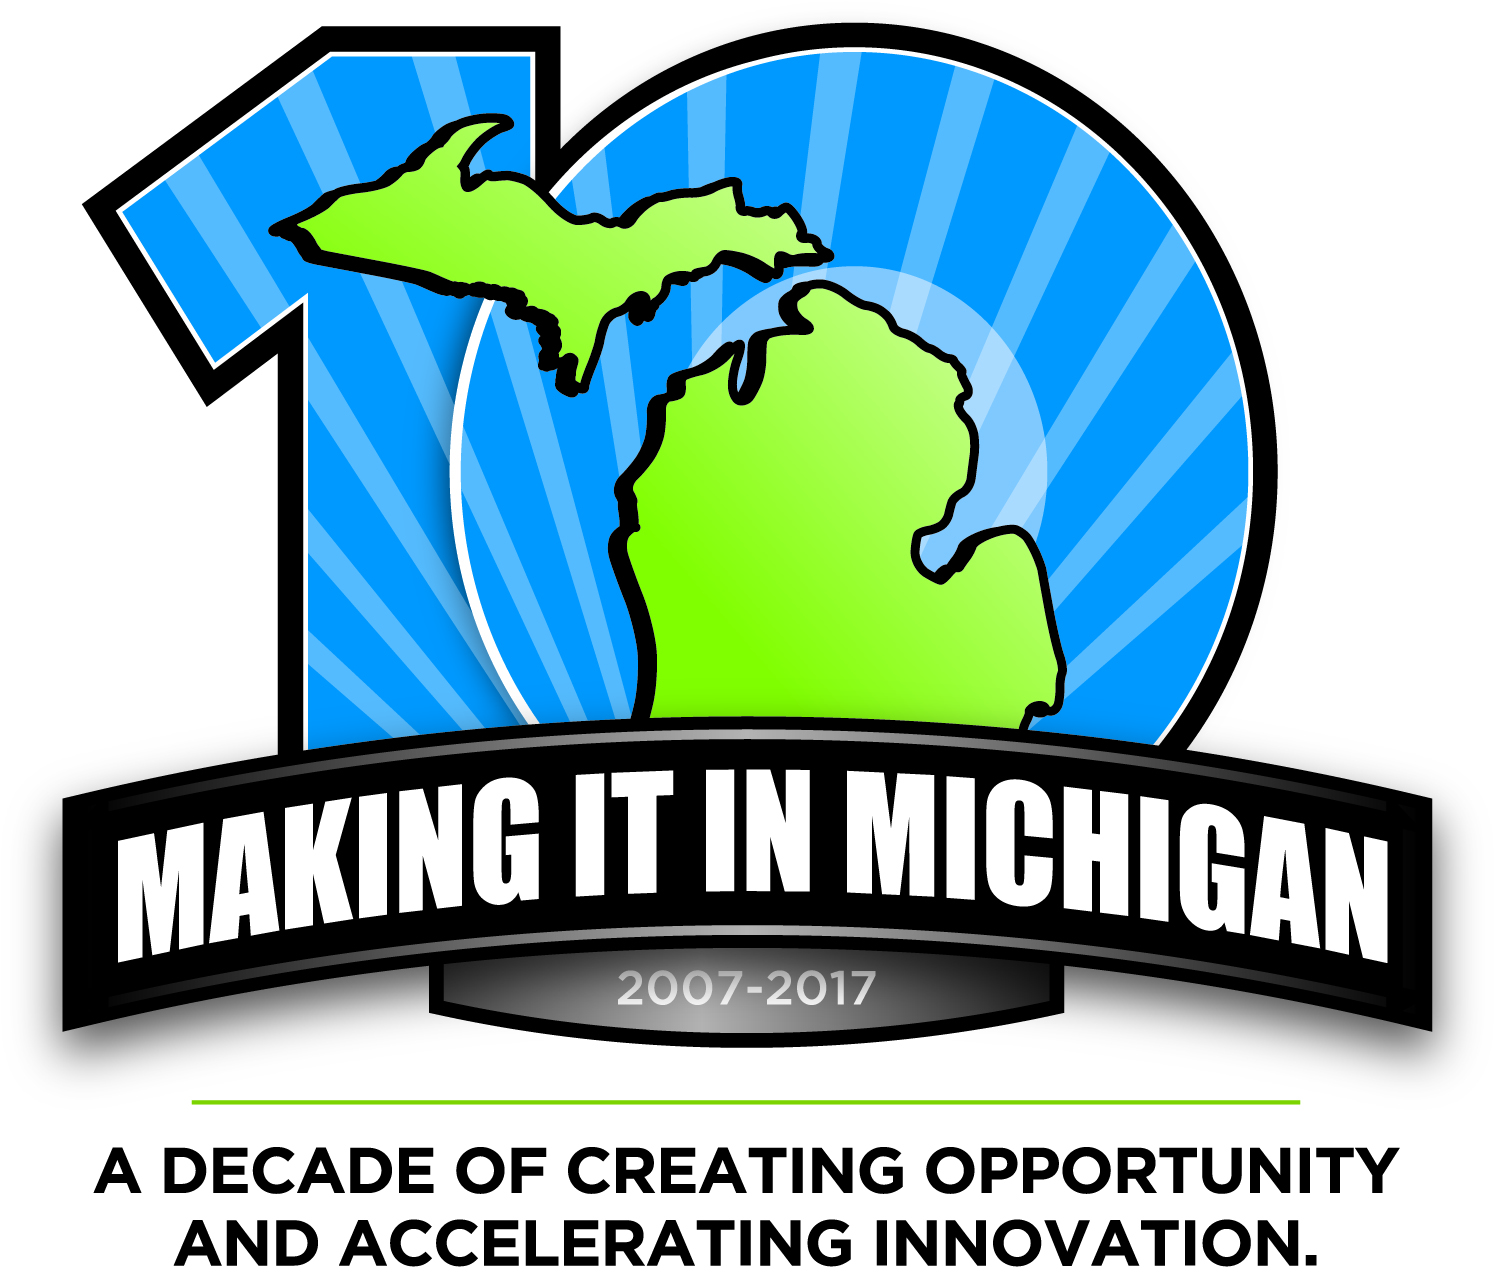 Making It In Michigan 10 year graphic